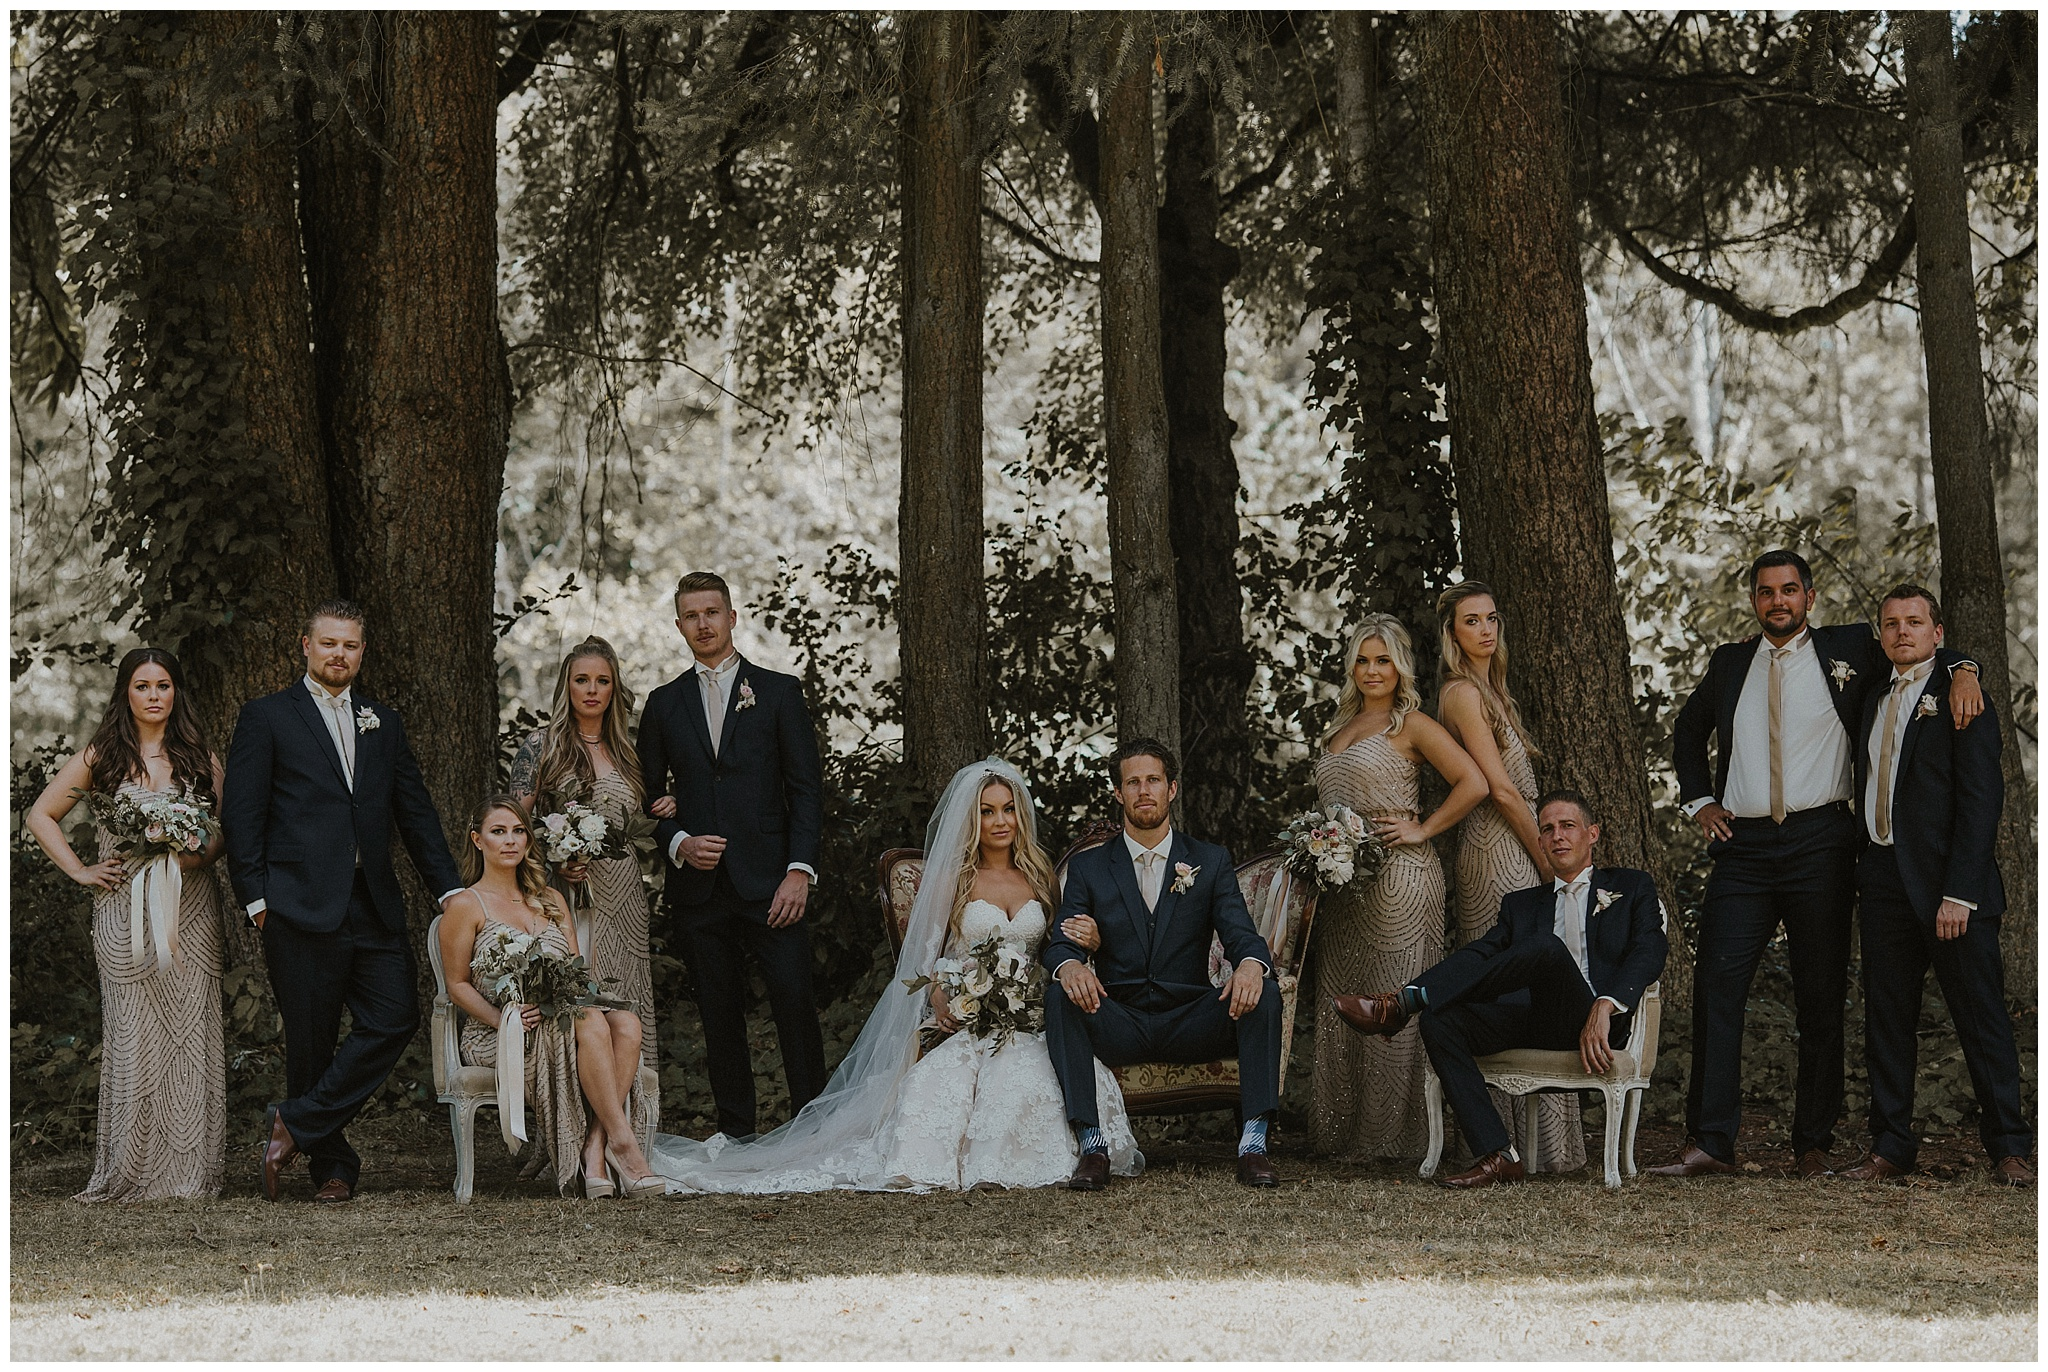 Vanity Fair bridal party photo on the lawn at the Hart House wedding venue